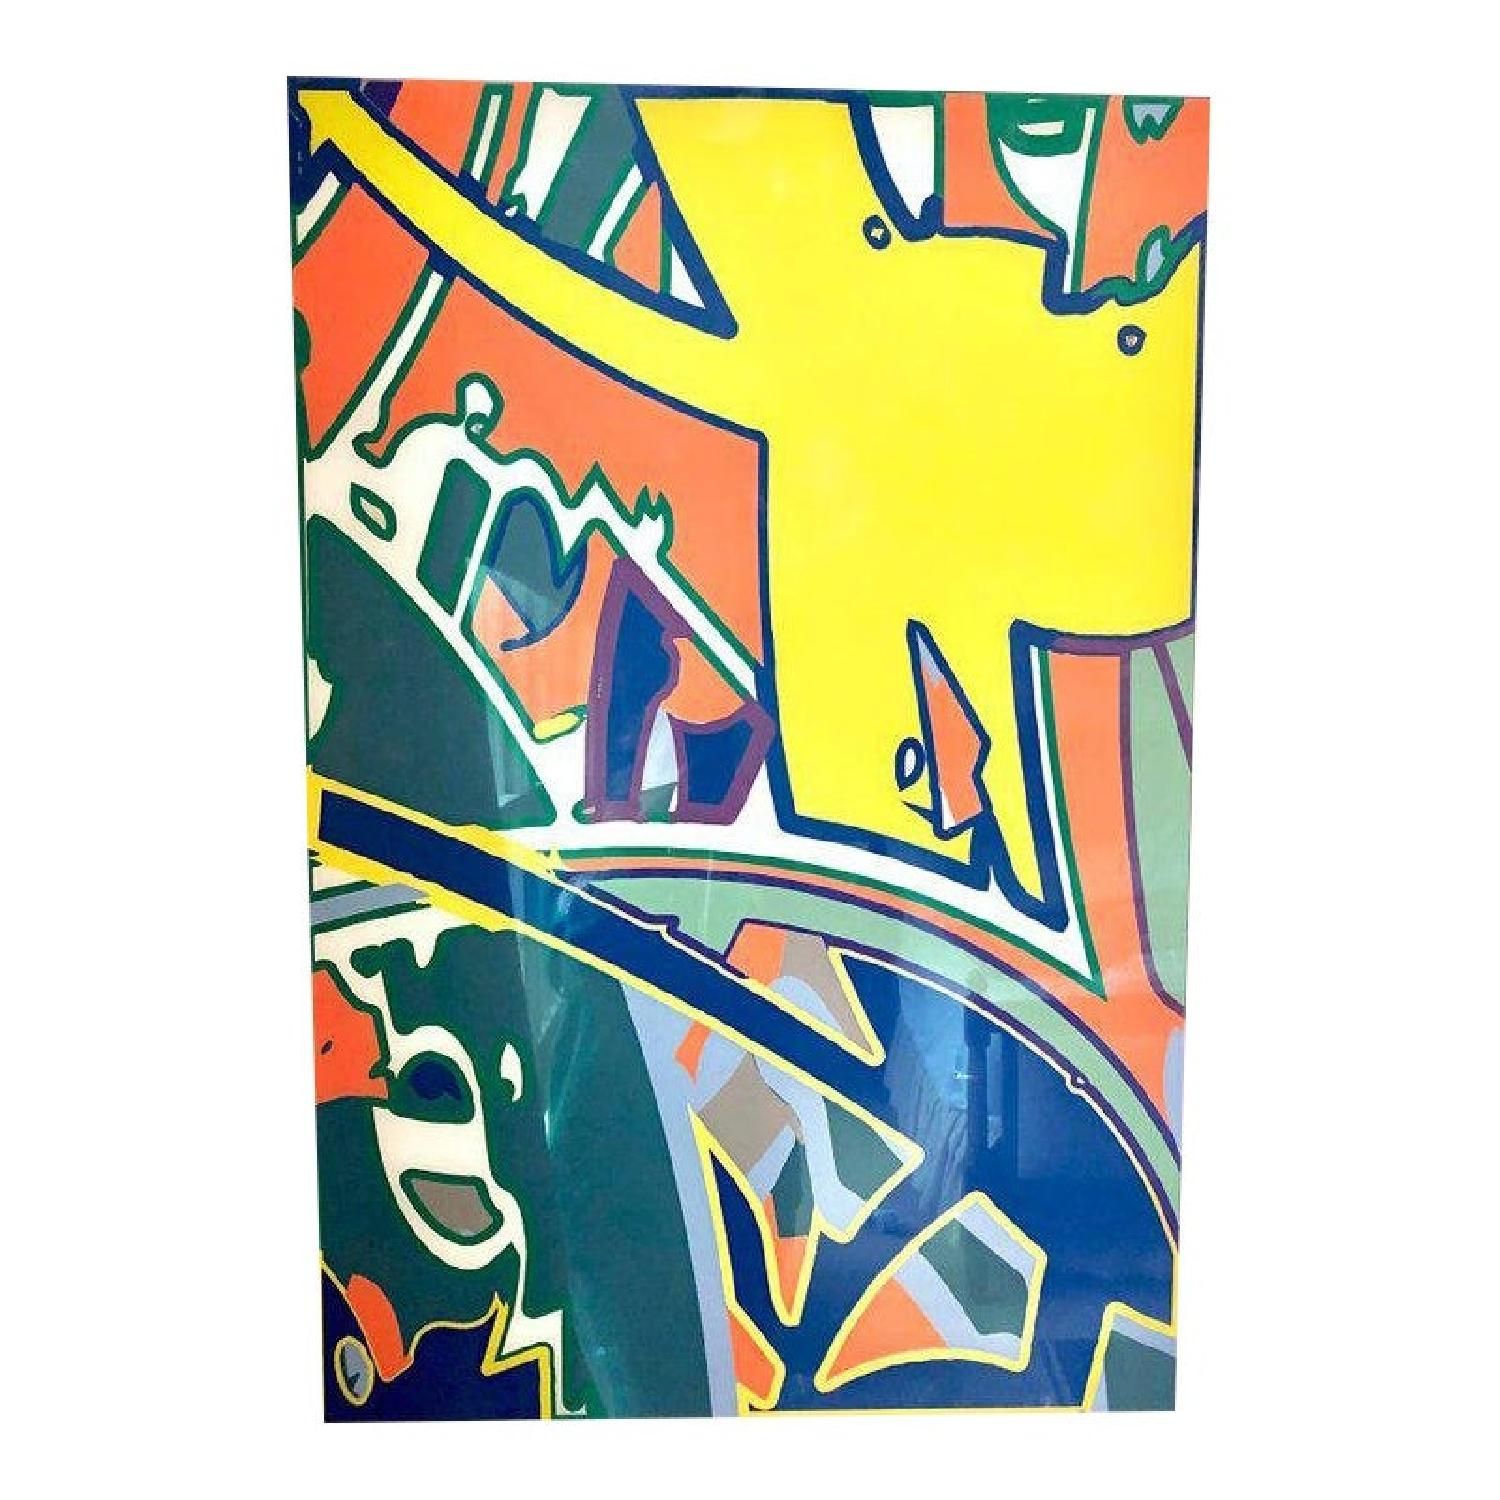 Keith Harring Style Graphic Art - image-1